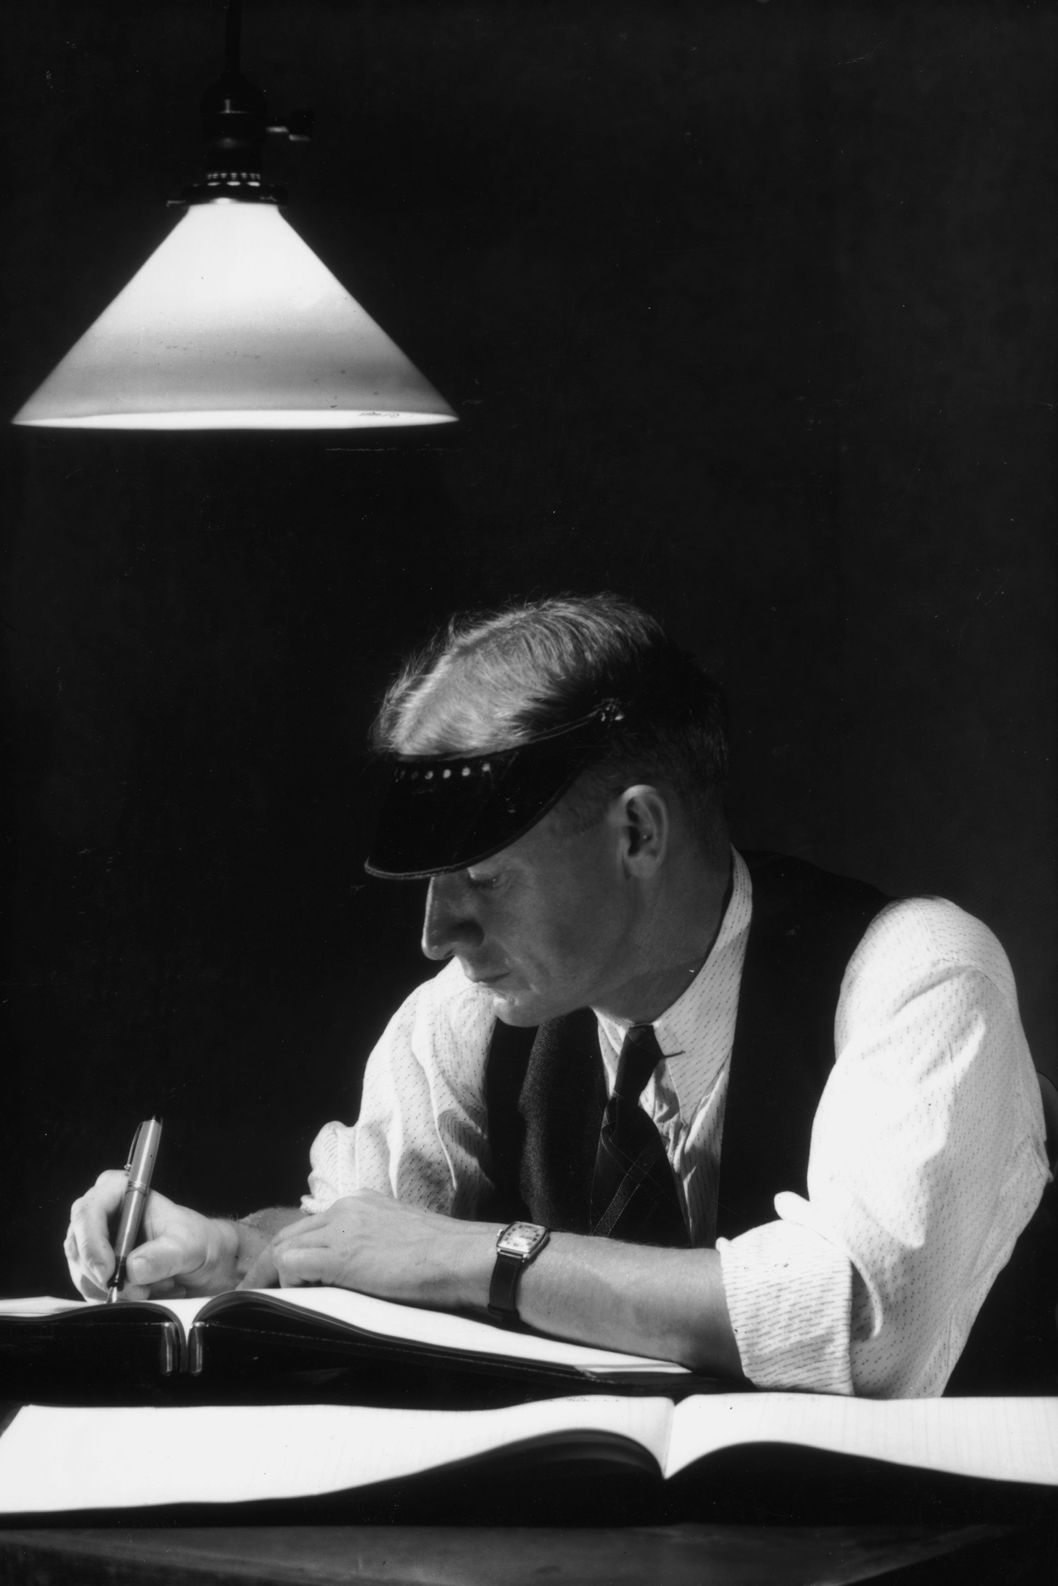 circa 1945:  A bookkeeper sits at a desk in the dark and writes in a ledger with a lamp hanging above him. He wears a visor, a vest, and shirt sleeves.  (Photo by Hulton Archive/Getty Images)